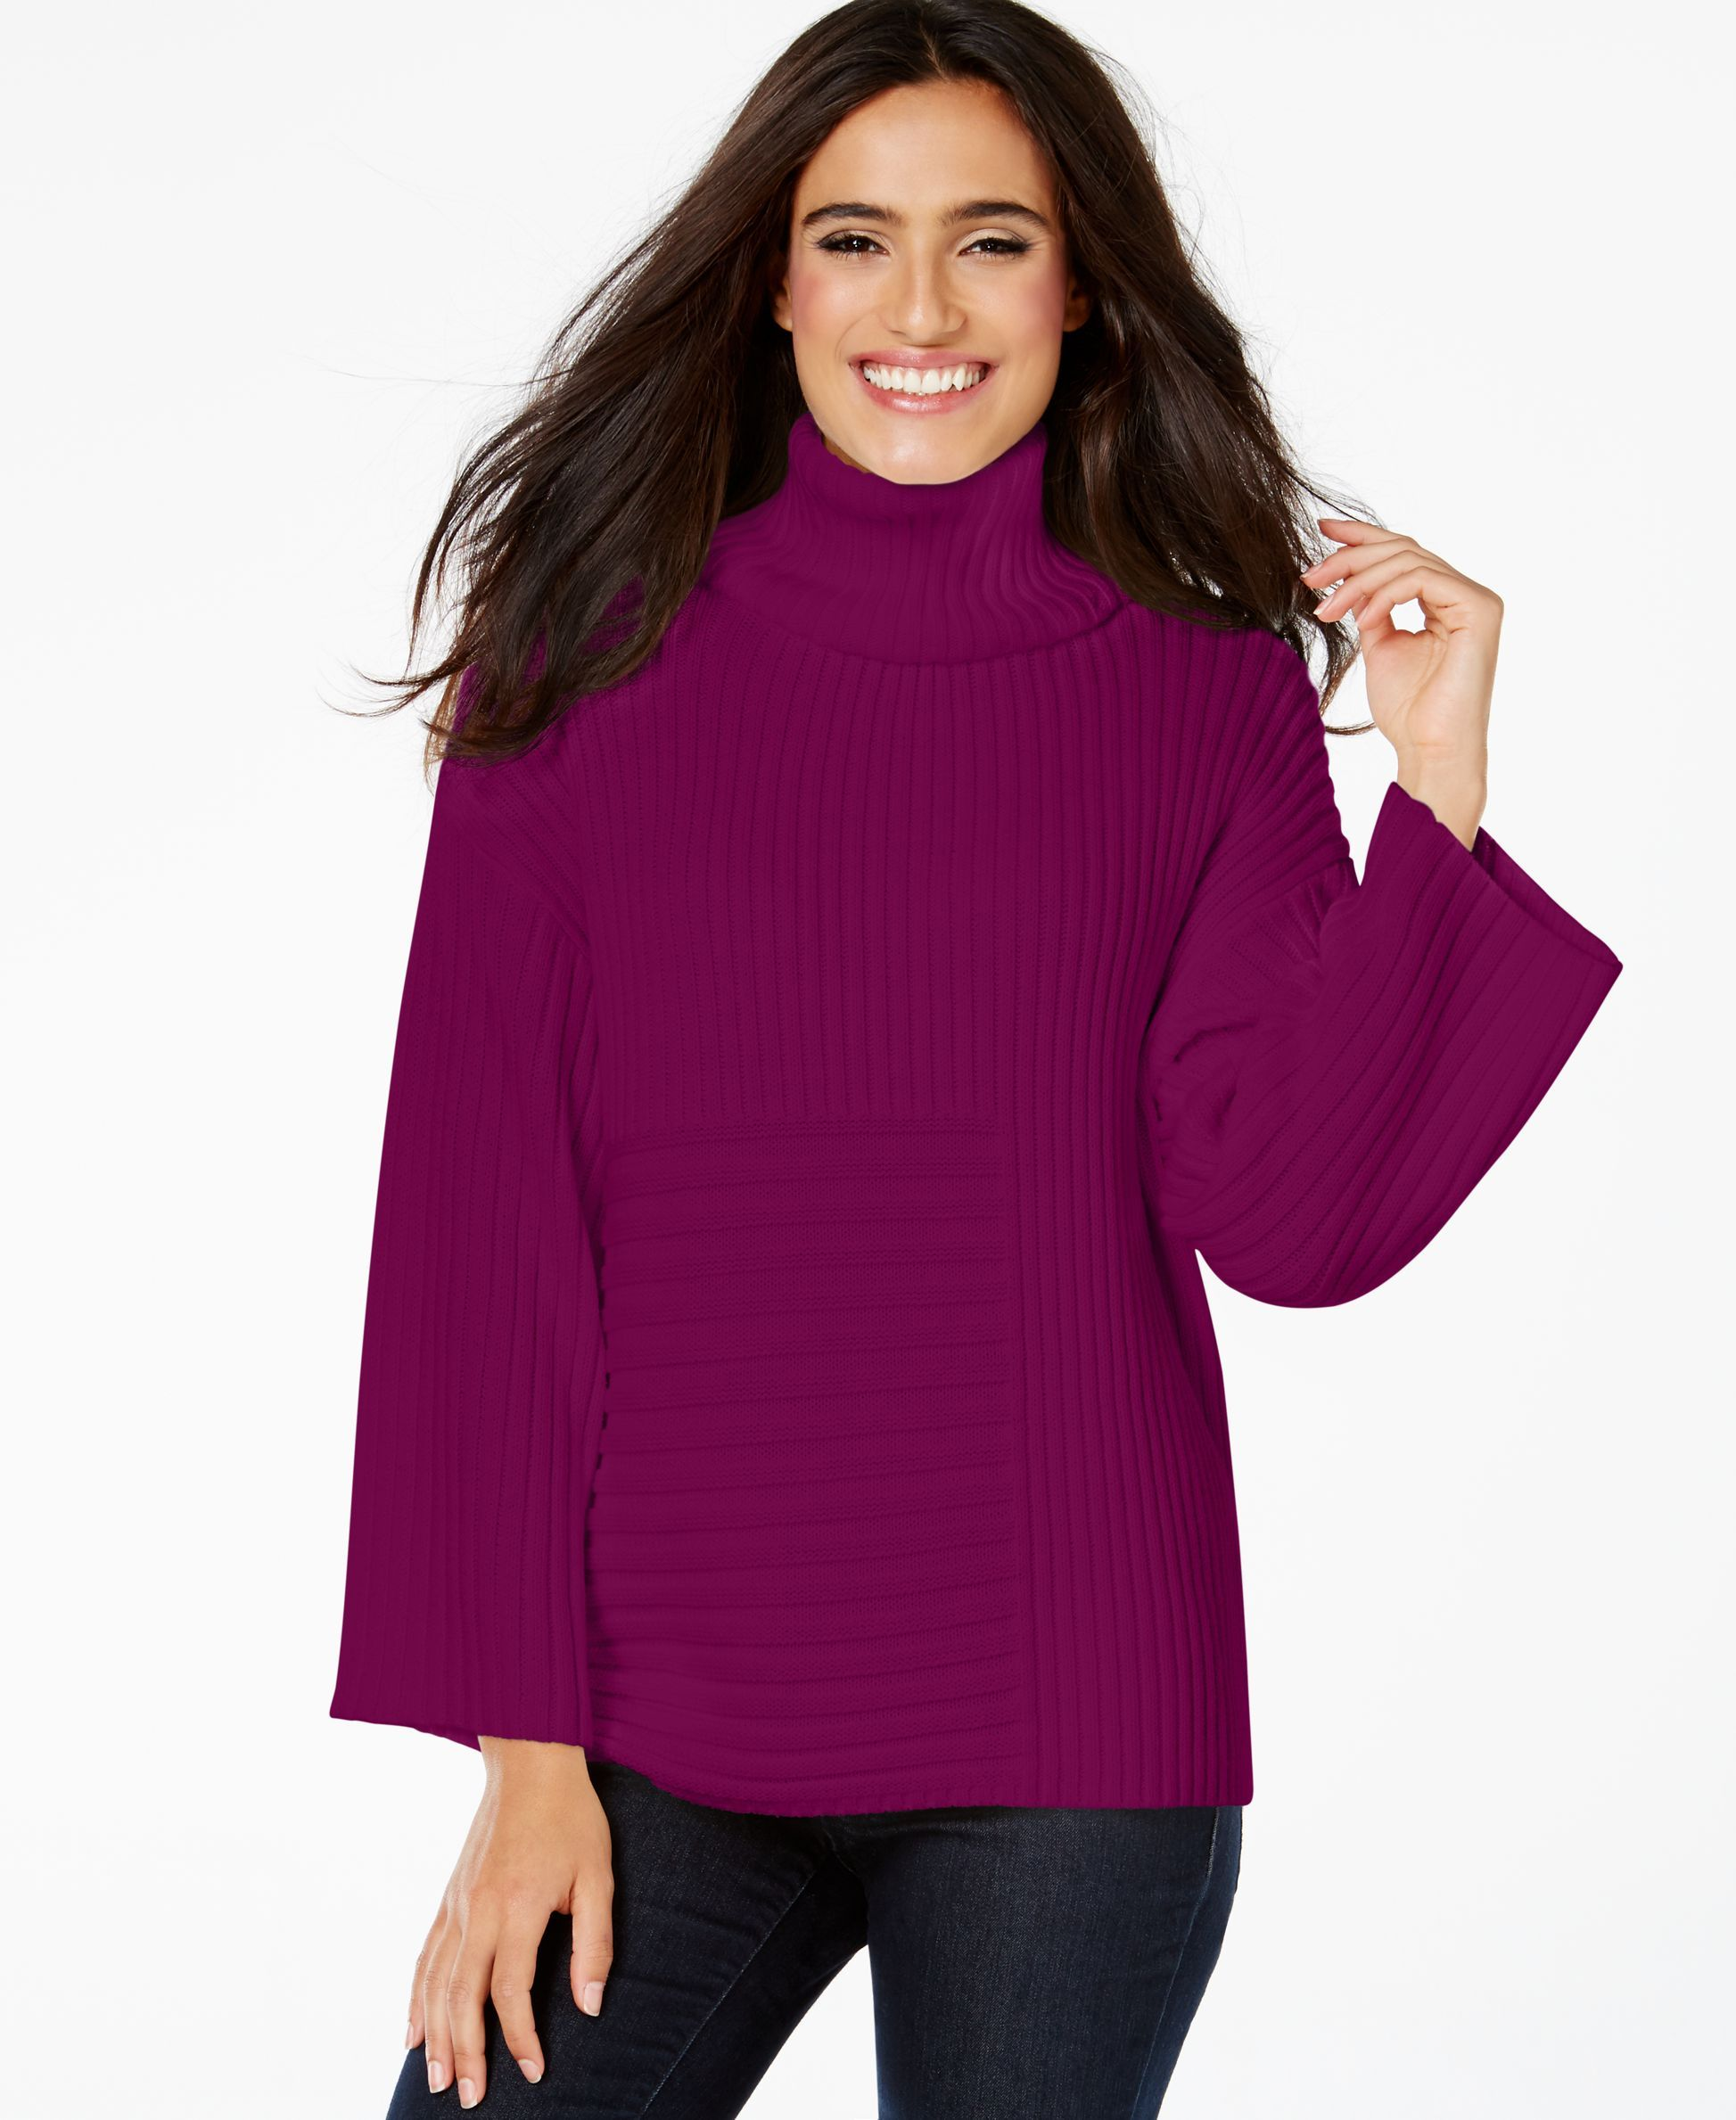 e6b0ff1f480 Vince Camuto Ribbed Turtleneck Sweater